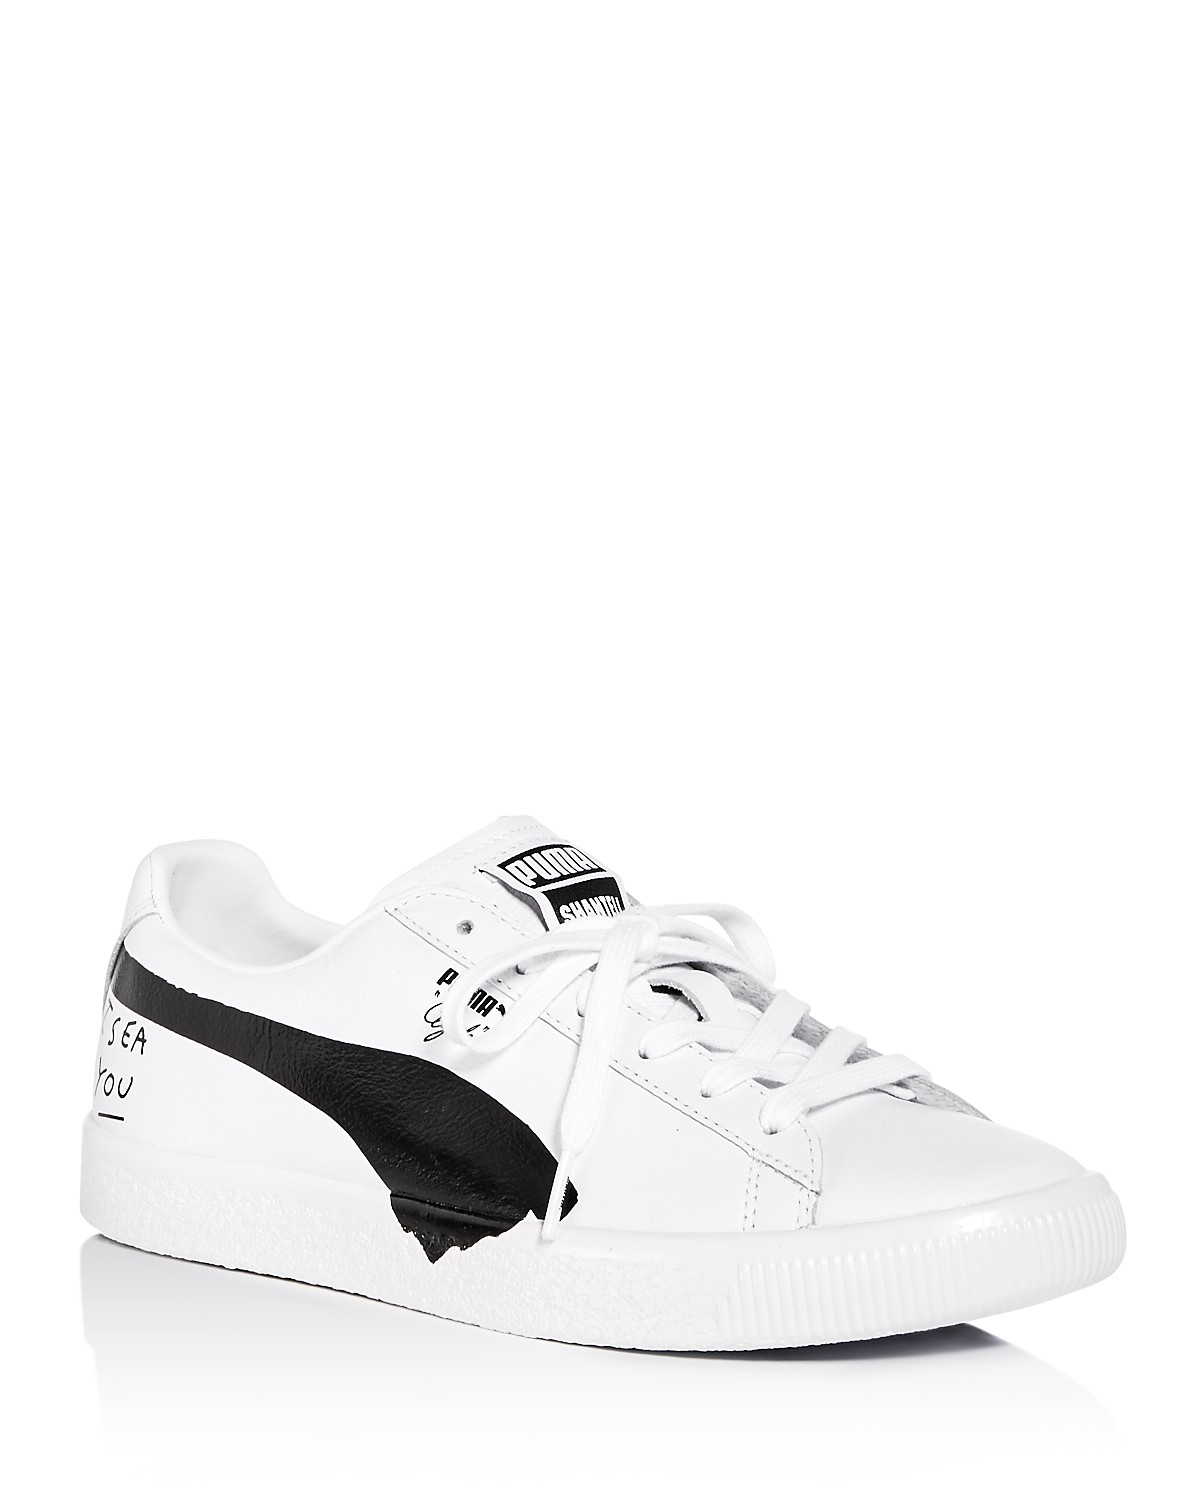 Puma X Shantell Martin Women's Clyde Leather Lace Up Sneakers dGh7a